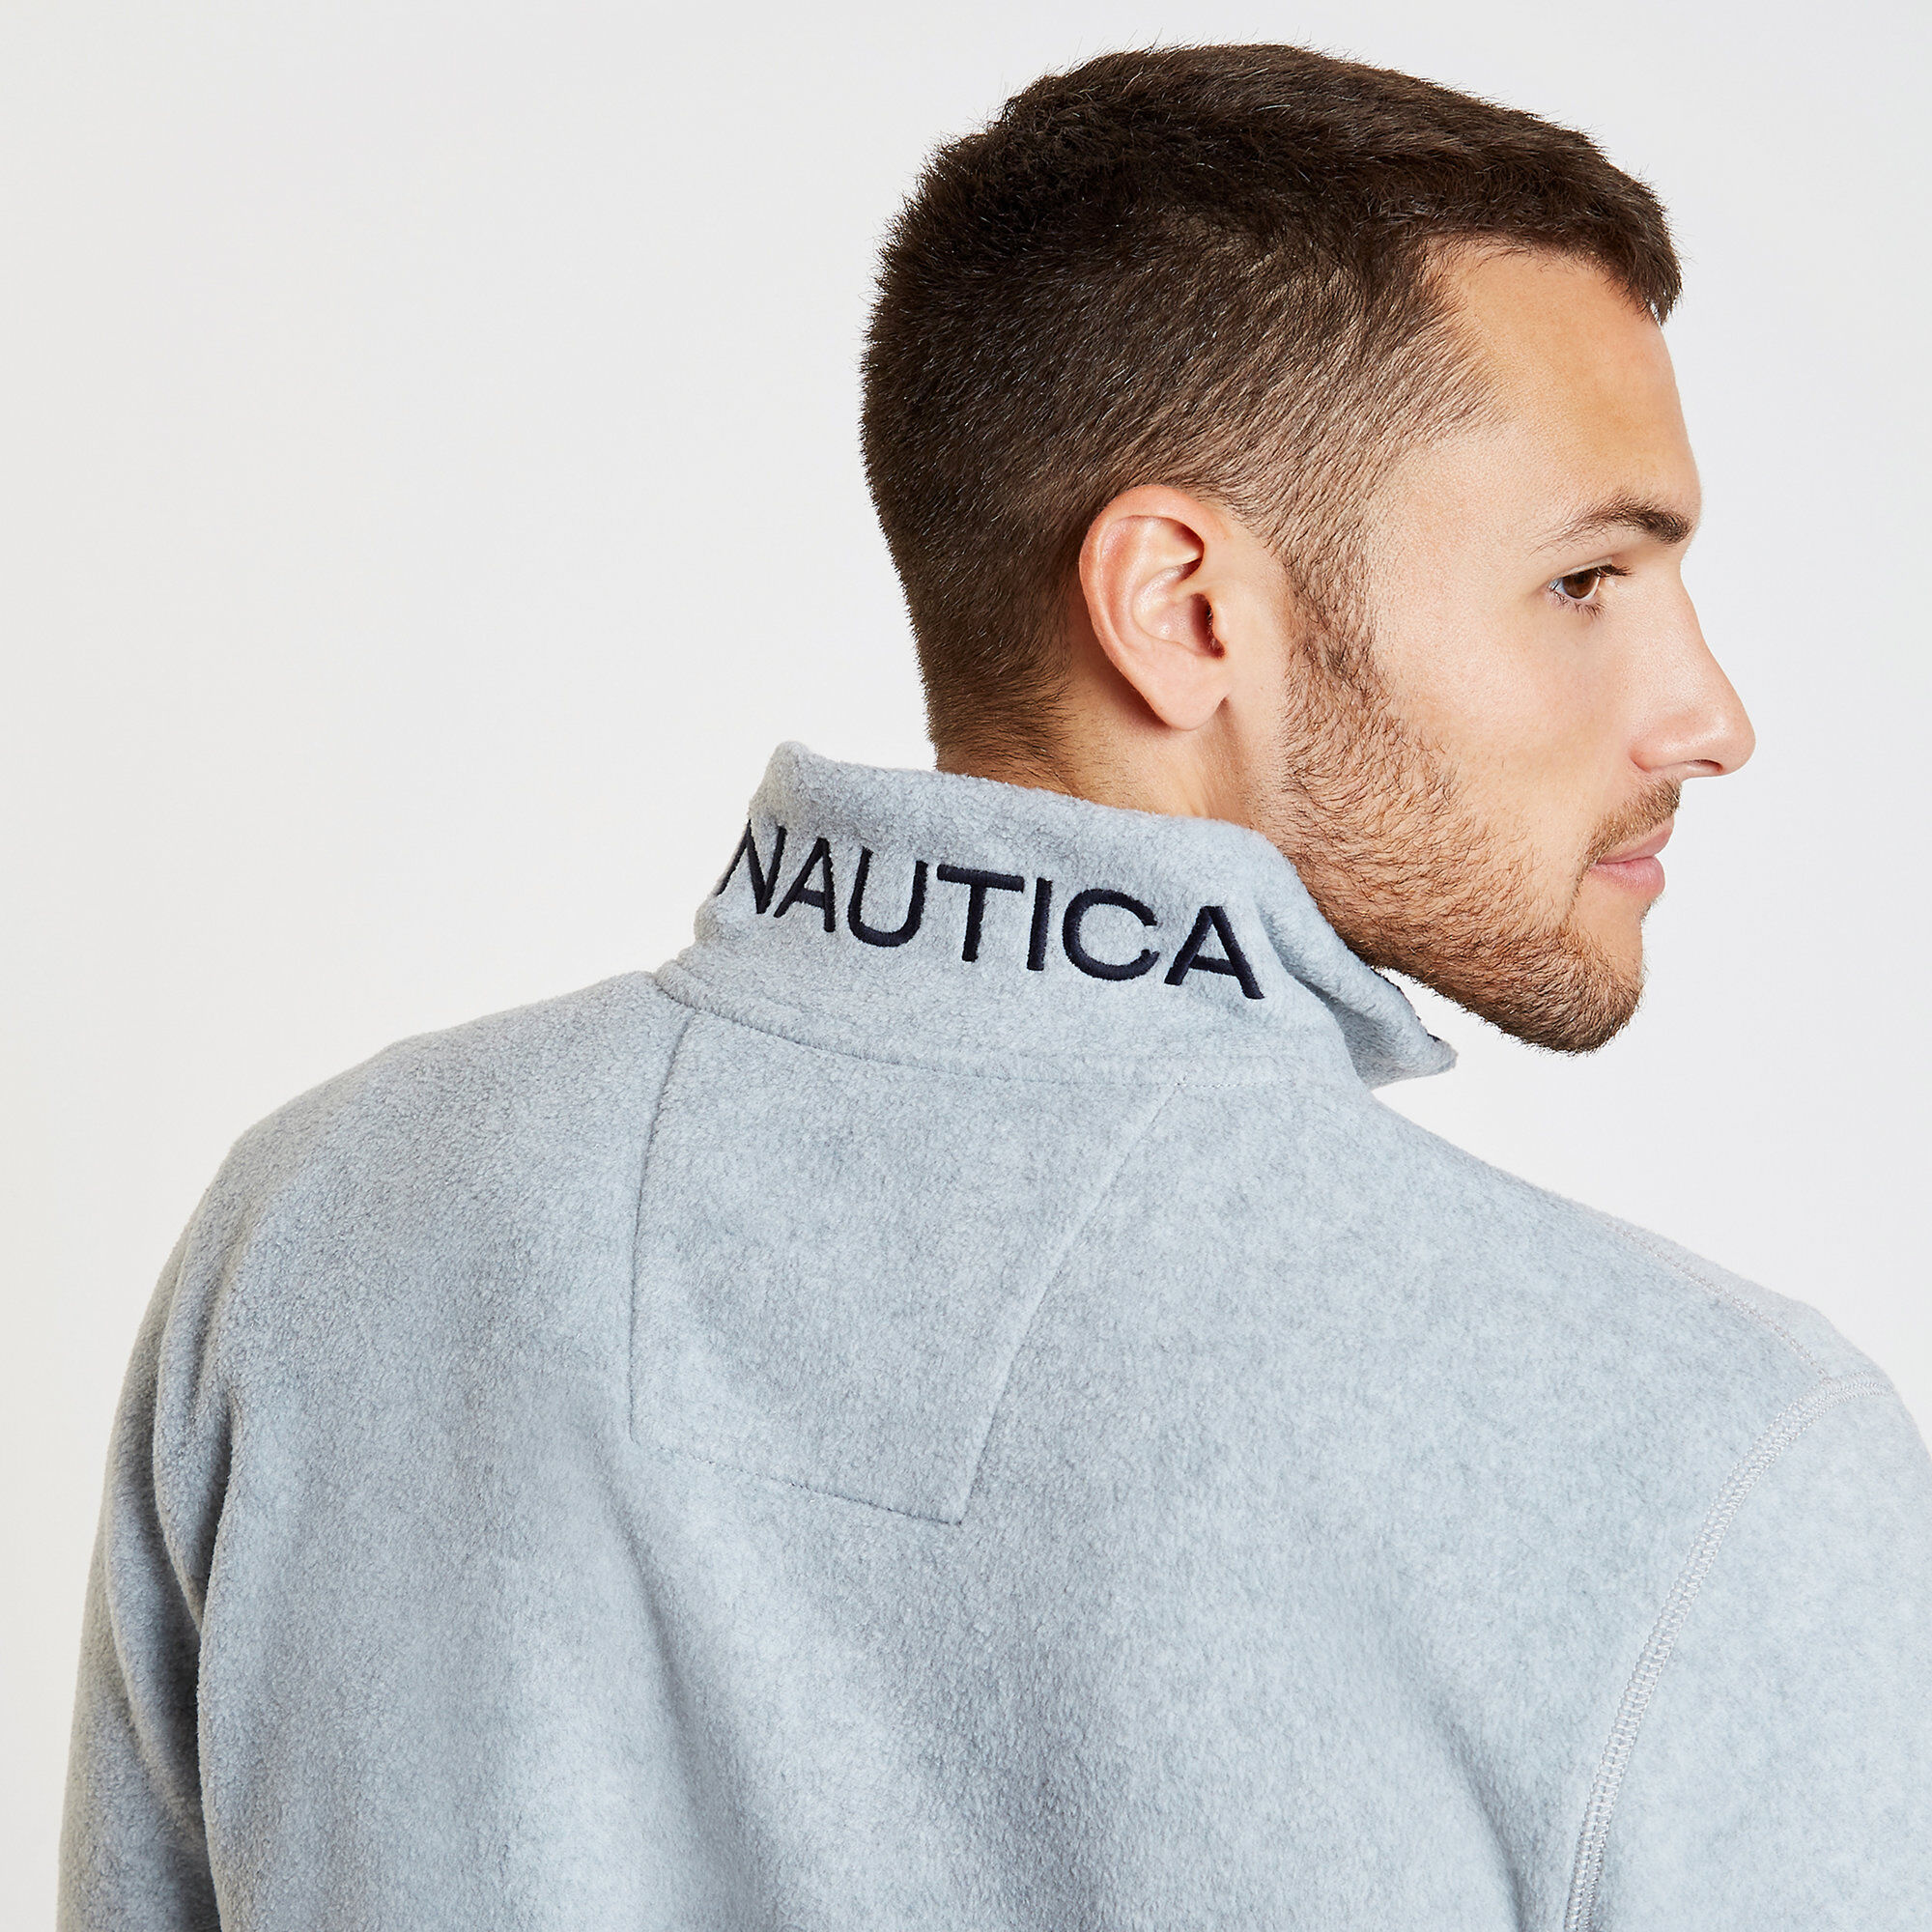 Precise Basic Nautica Half Zip Top Customers First Clothing, Shoes & Accessories Activewear Tops